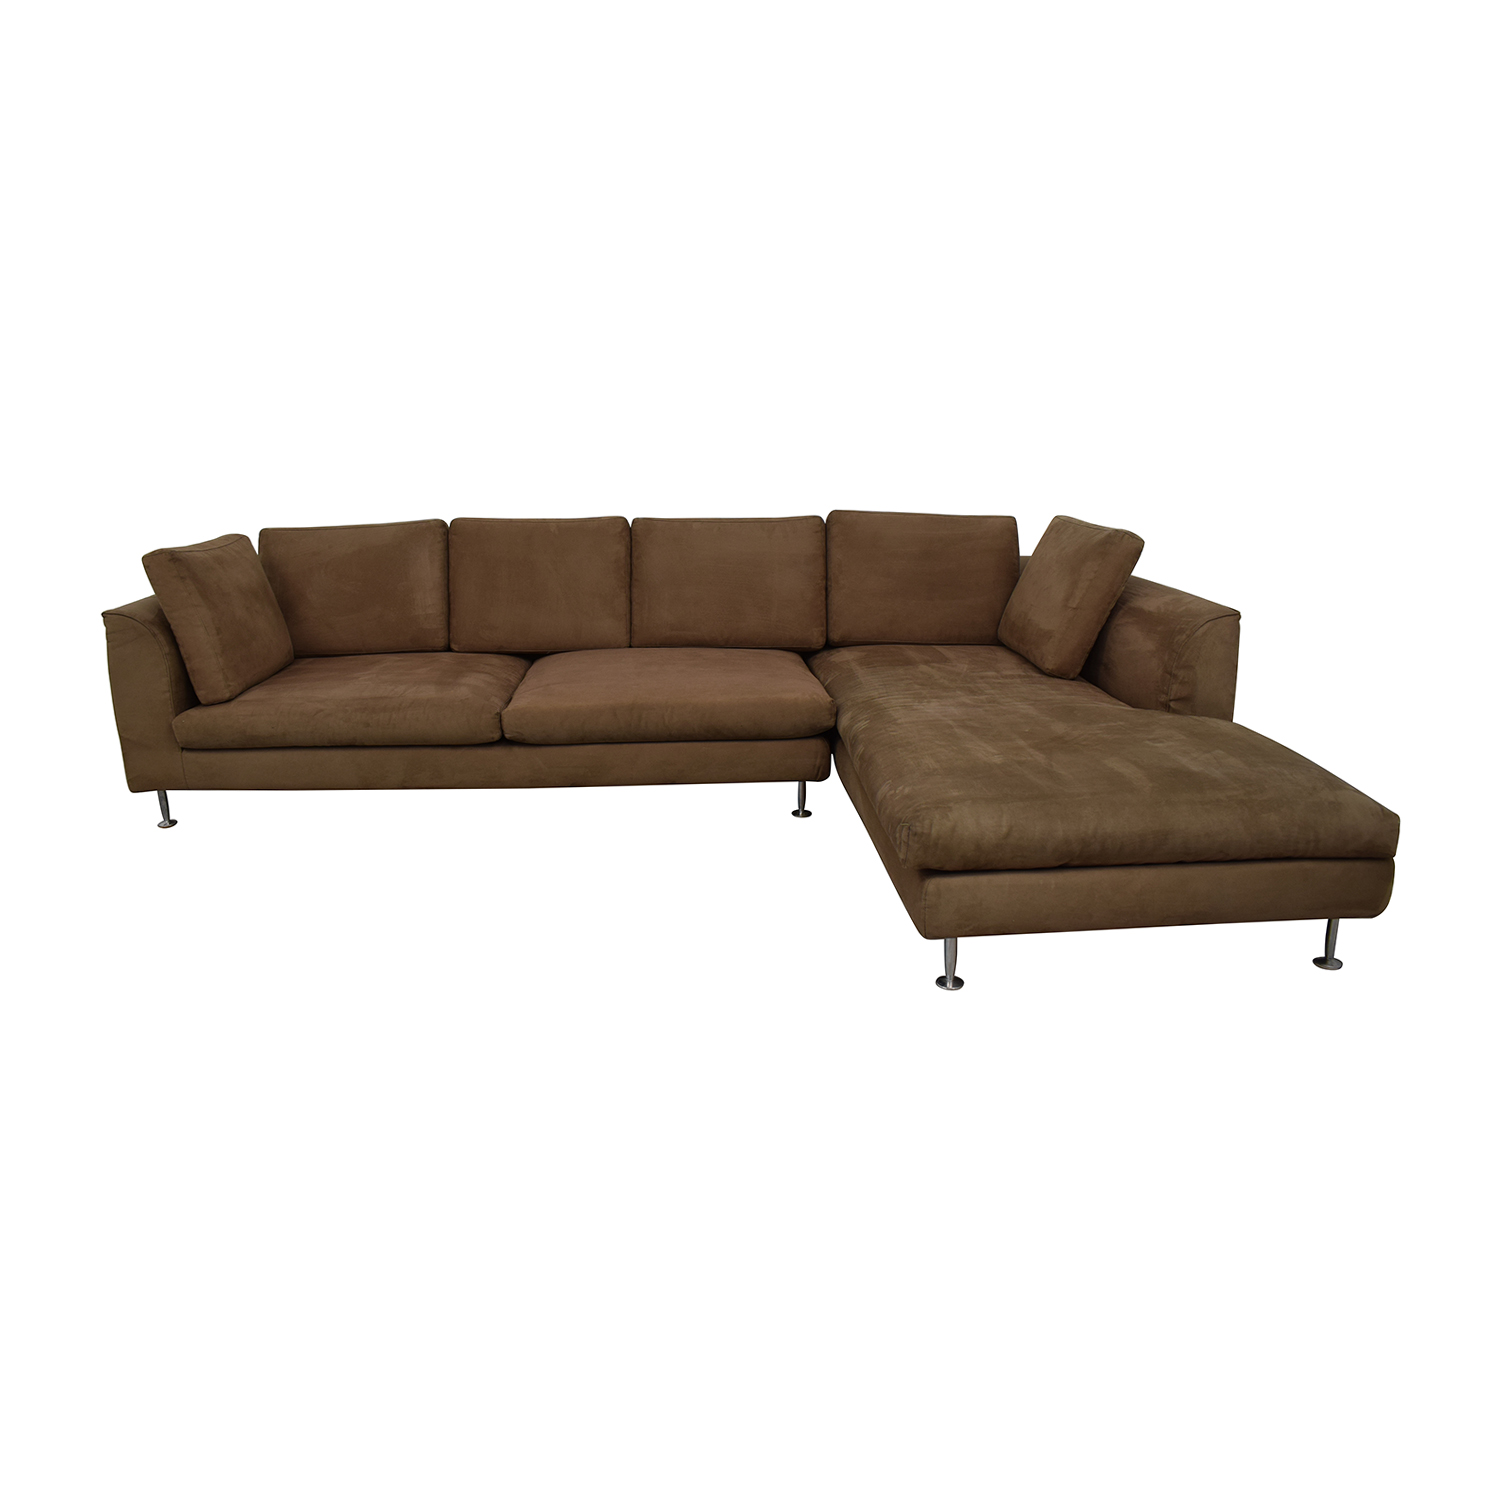 Brown Sectional Sofa With Chaise dimensions